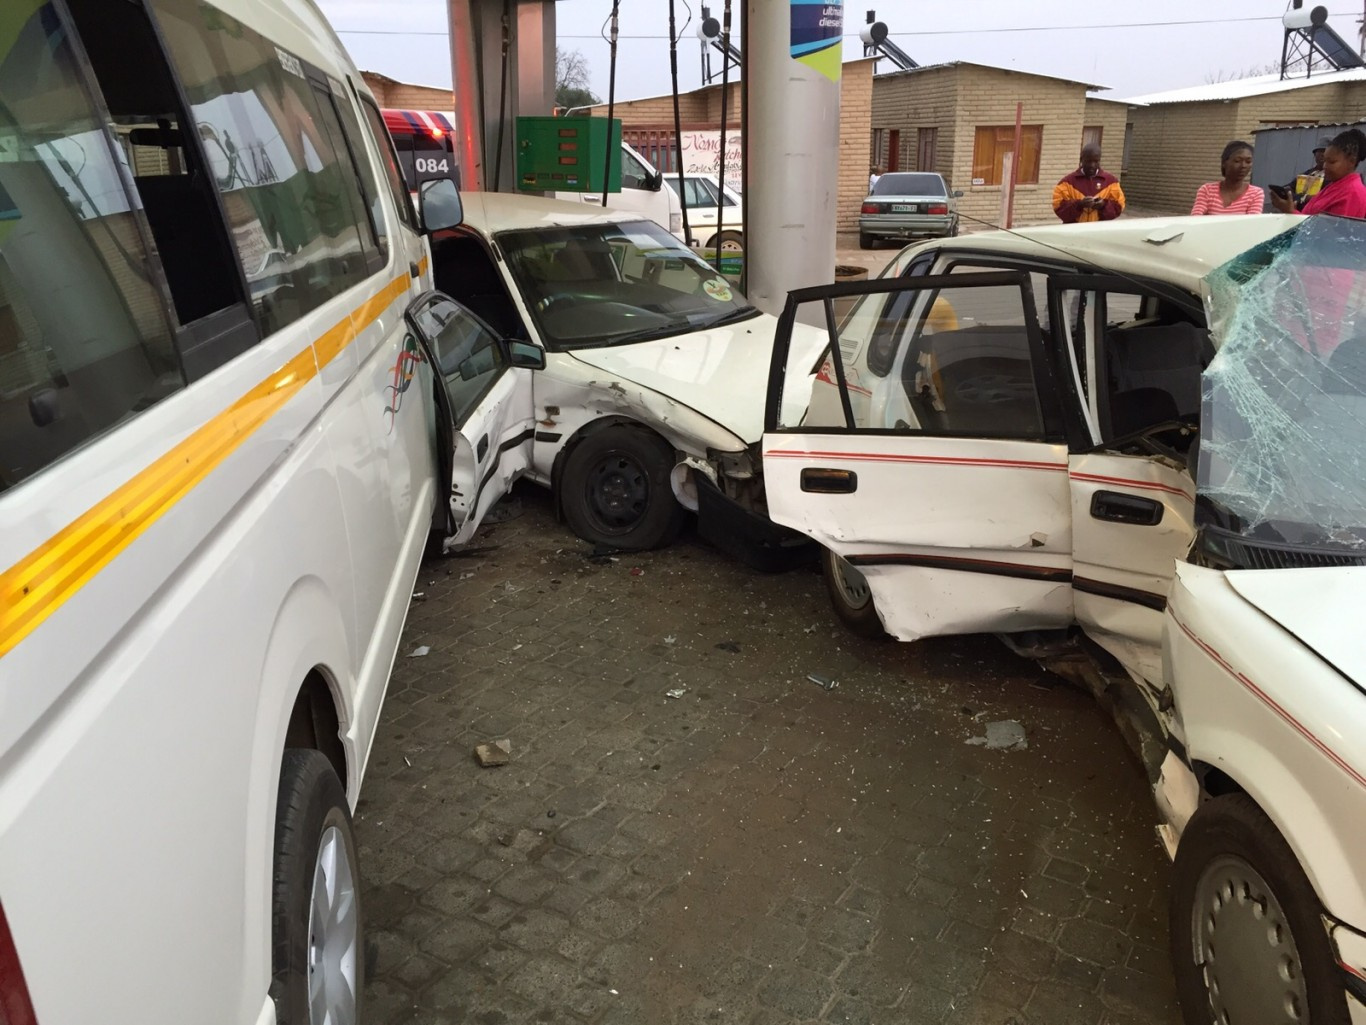 Collision at Bloemfontein petrol station leaves seven injured